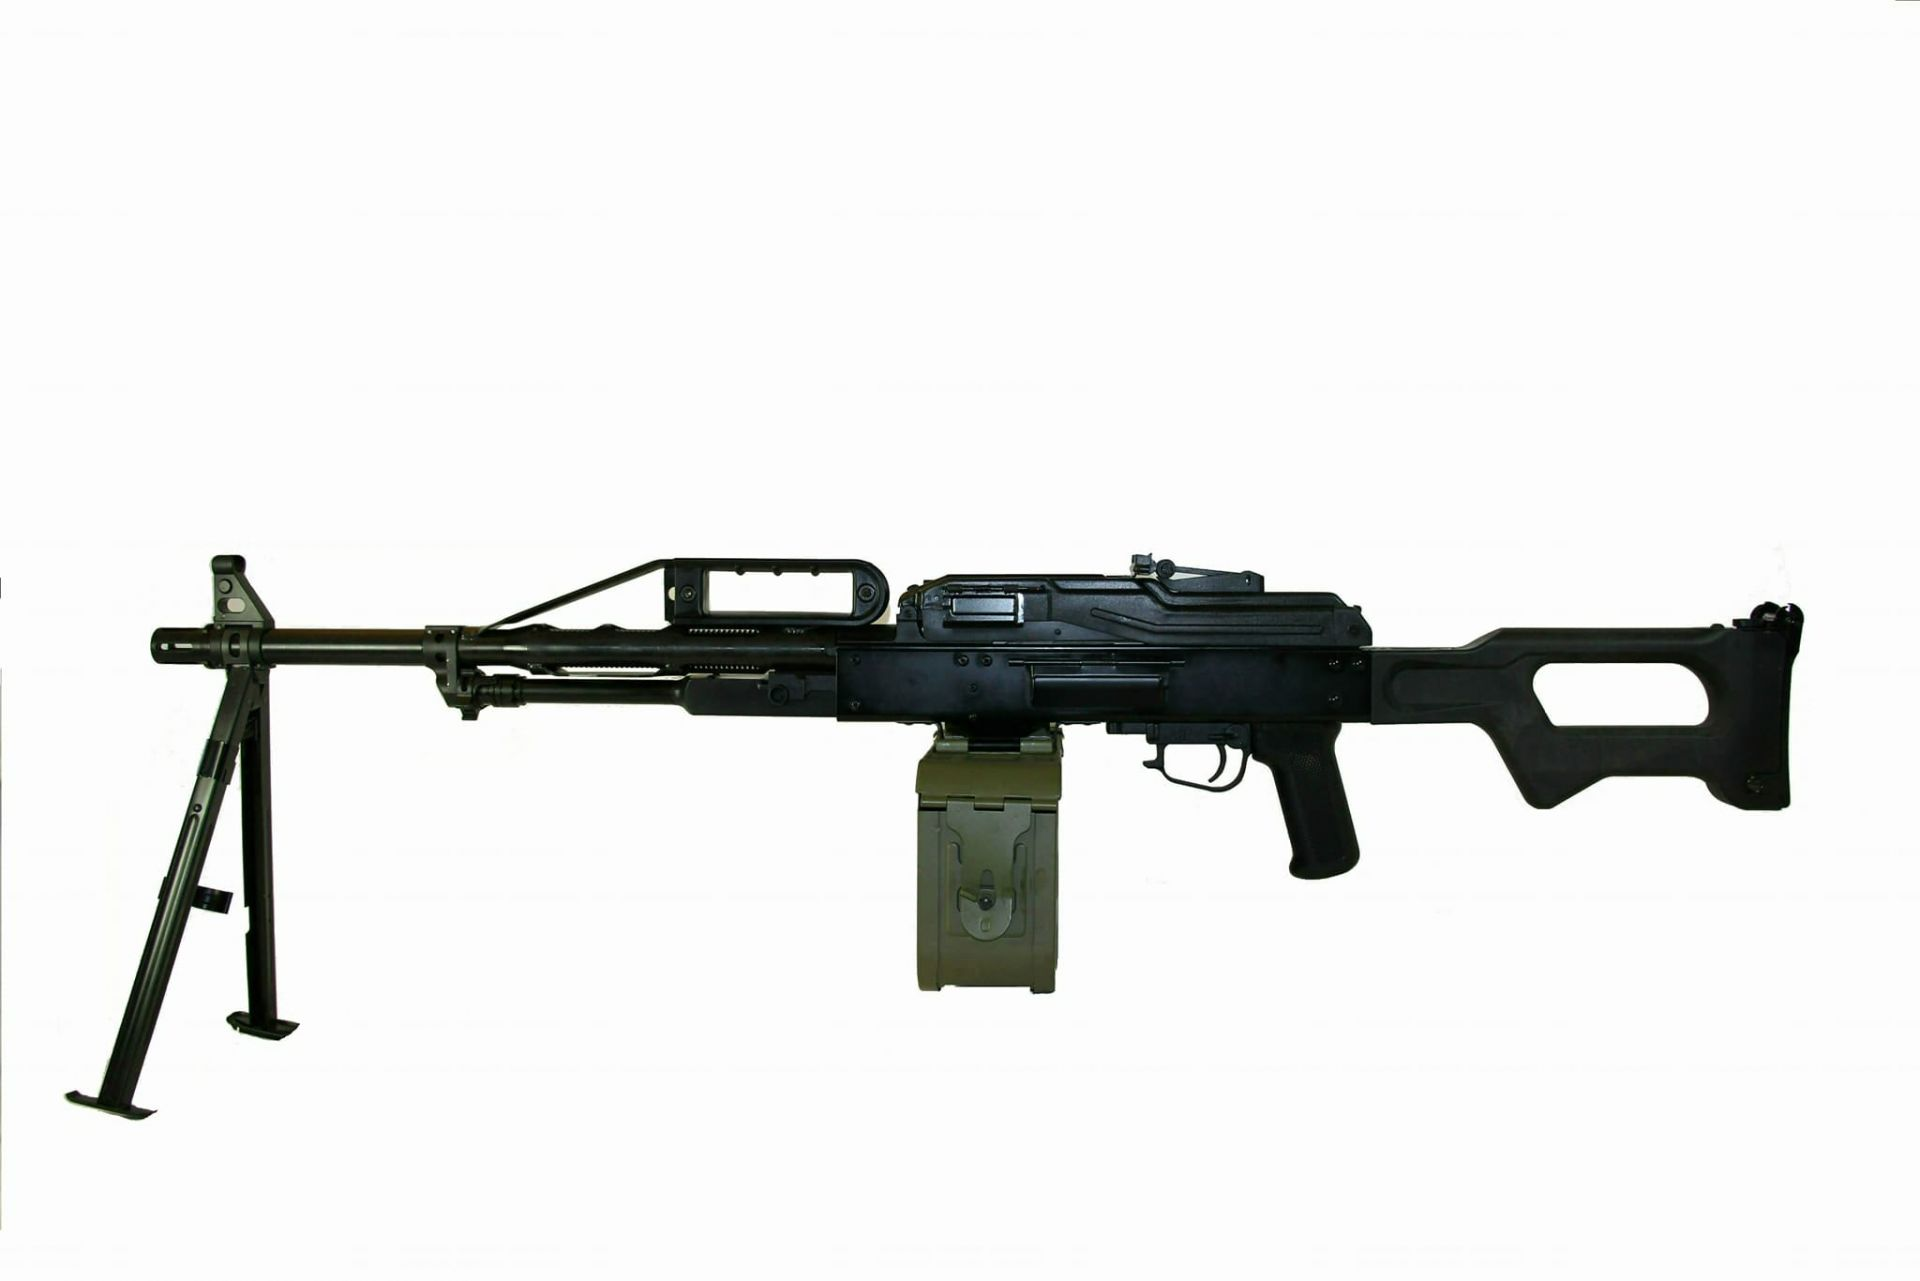 Raptor PKP Pecheneg Full Steel Light Machine Gun AEG - Standard